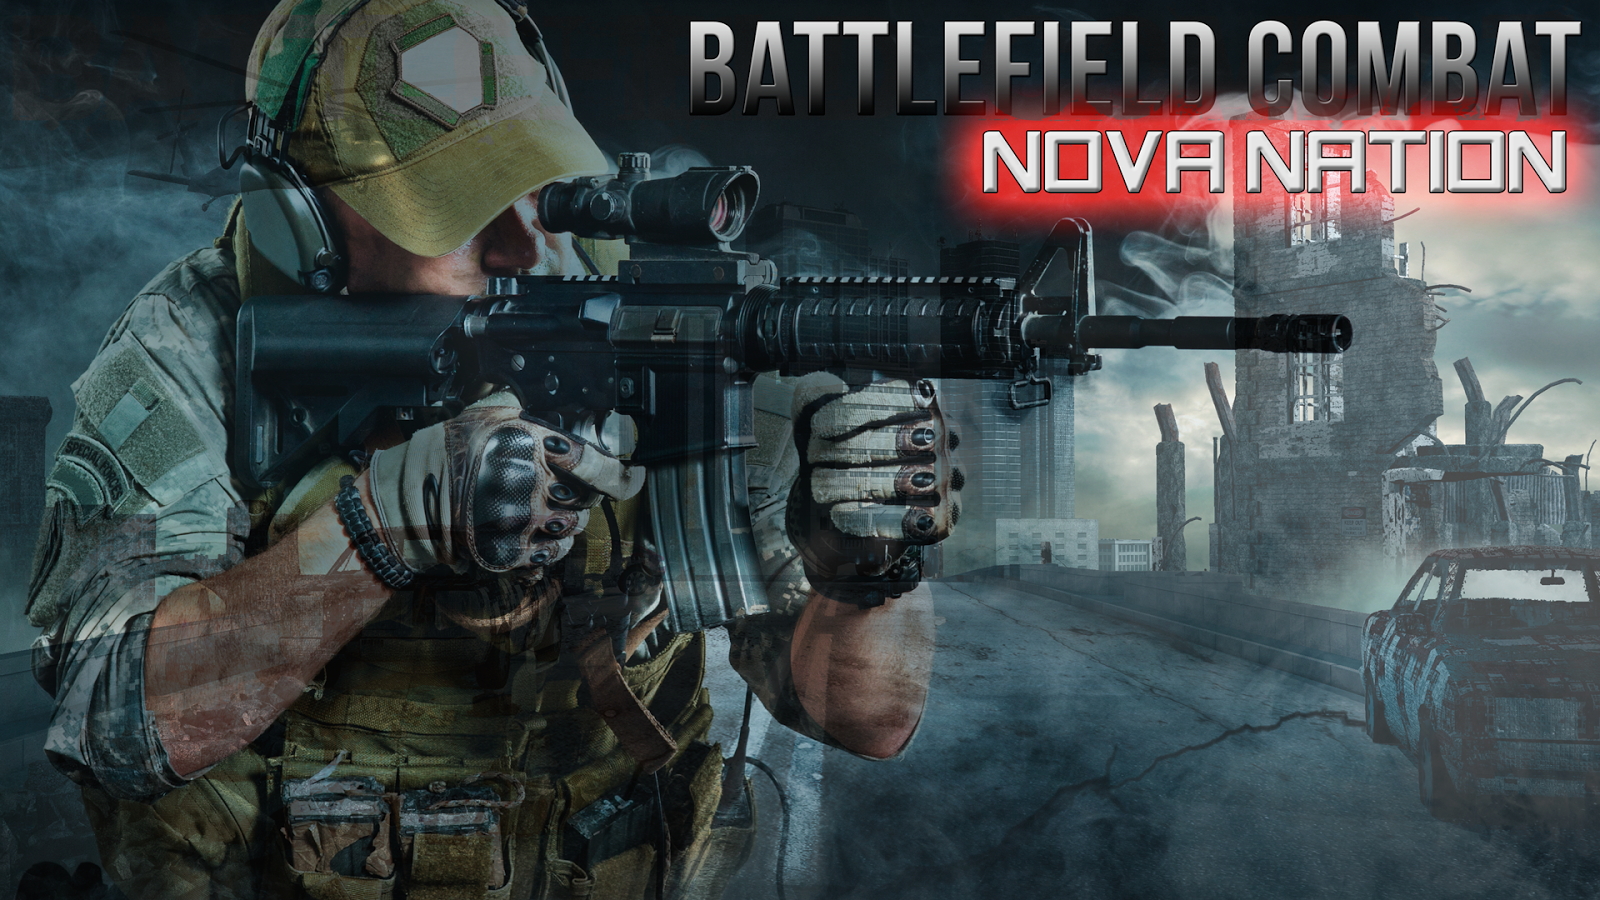 Battlefield Combat Nova Nation 1